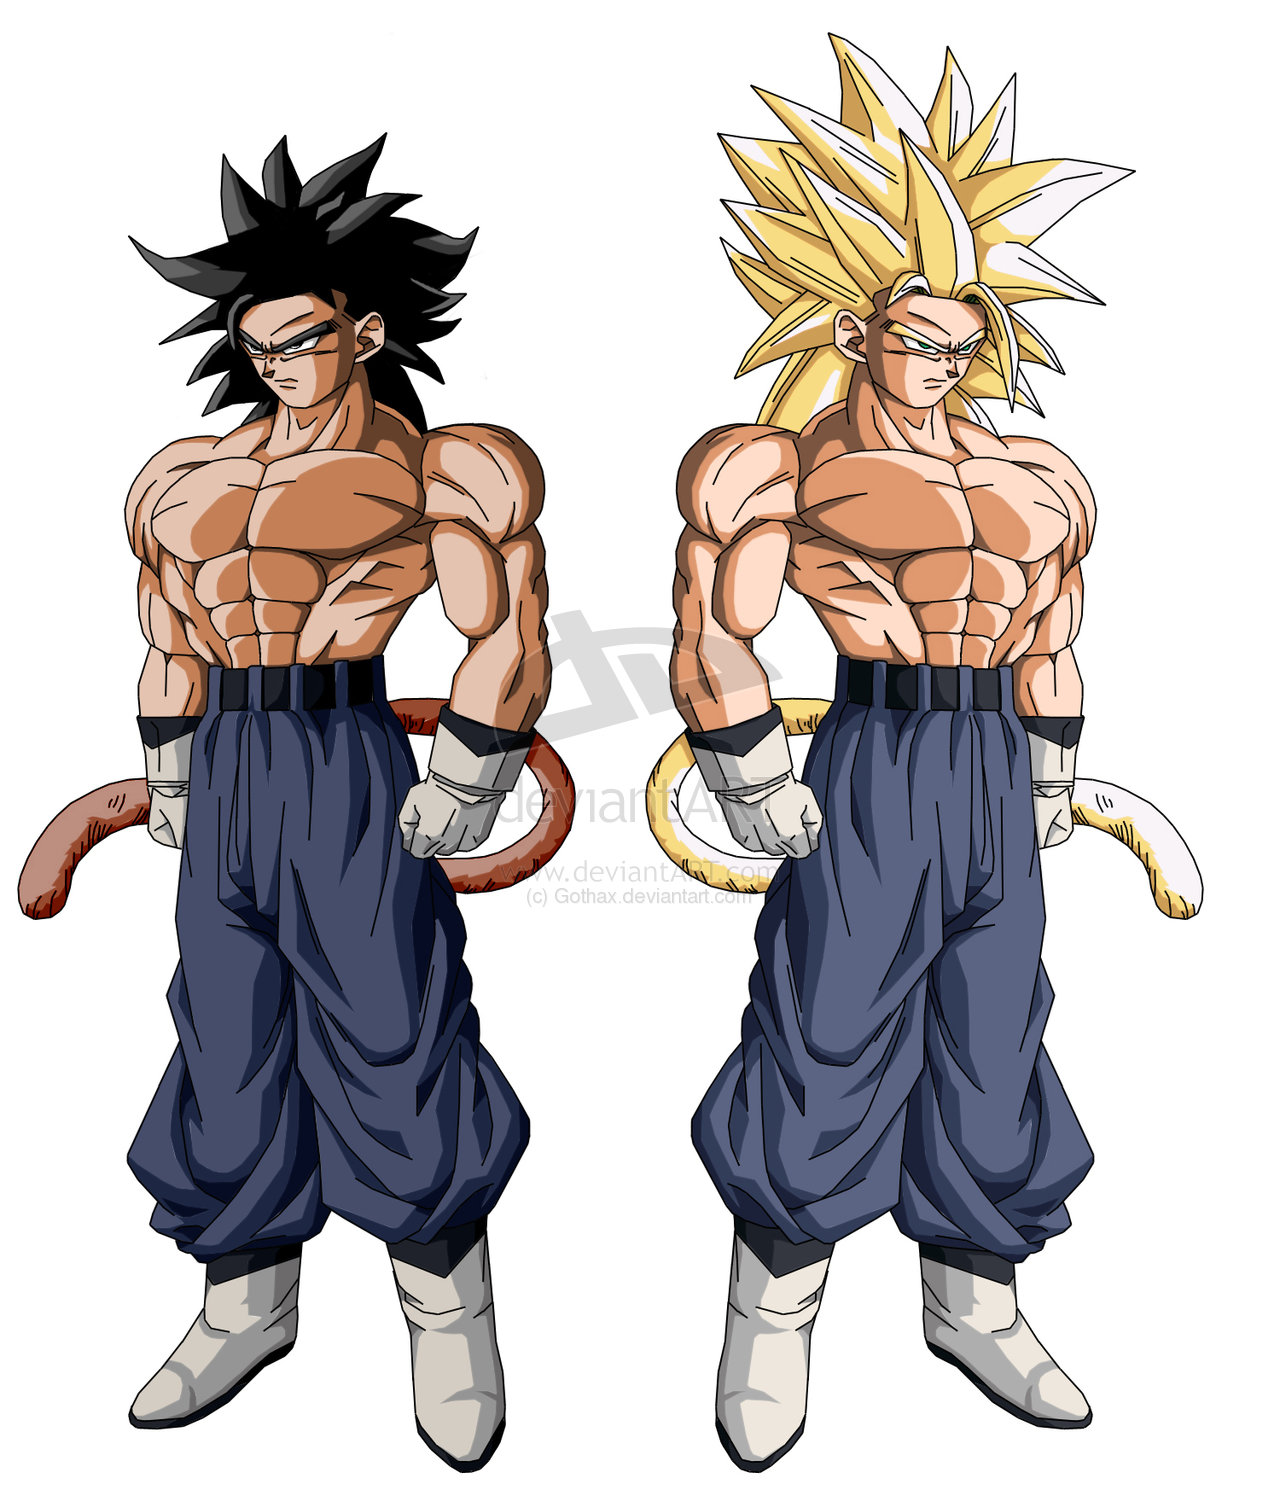 http://vignette2.wikia.nocookie.net/ultradragonball/images/d/dc/Created_saiyan(sorry_iris_didnt_mean_to_save!).jpg/revision/latest?cb=20130126181145 Dragon